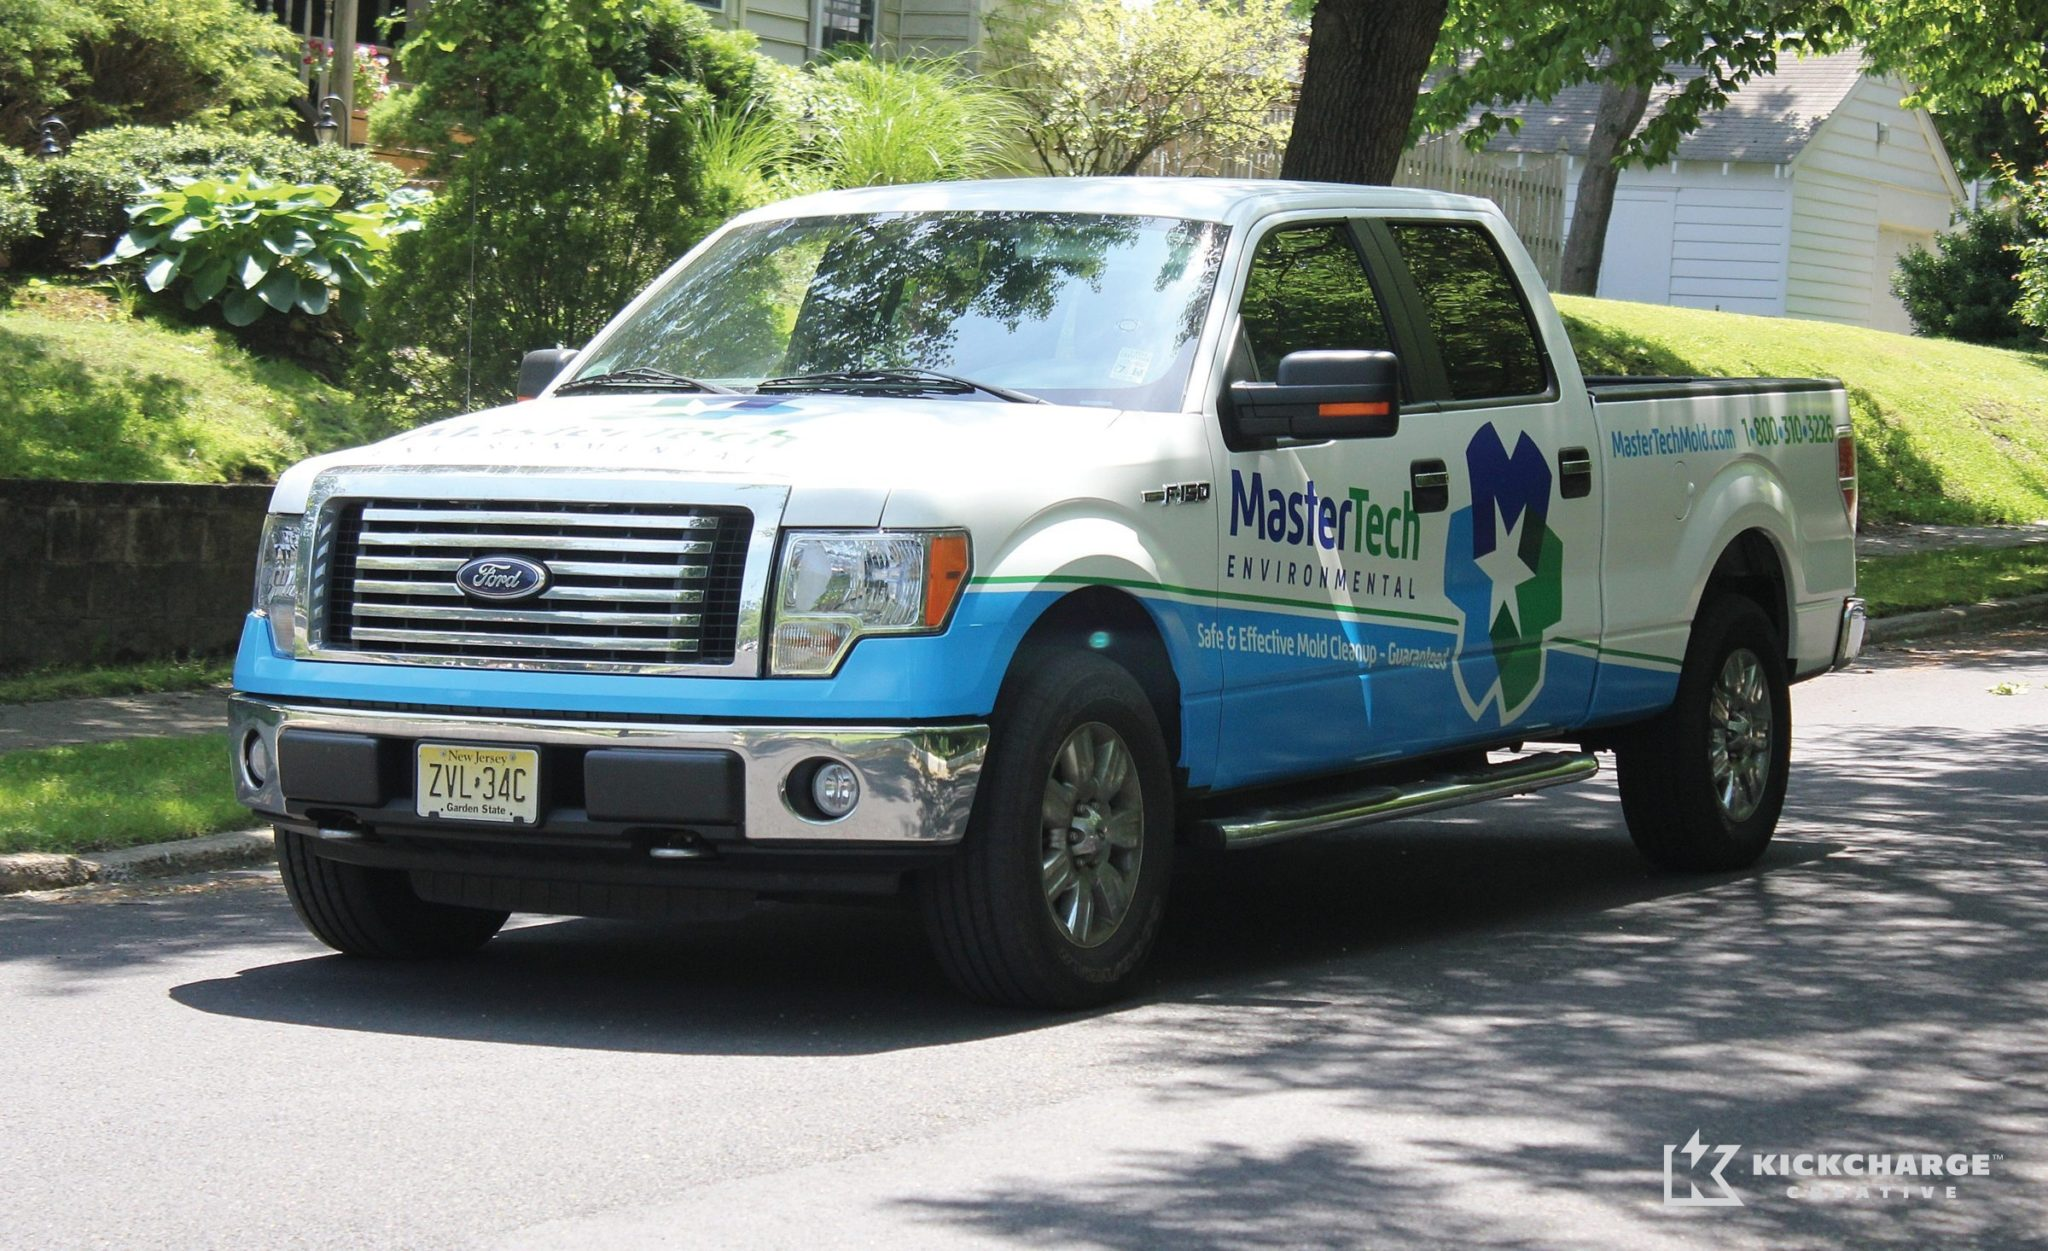 Truck wrap design for a mold remediation company in NJ.